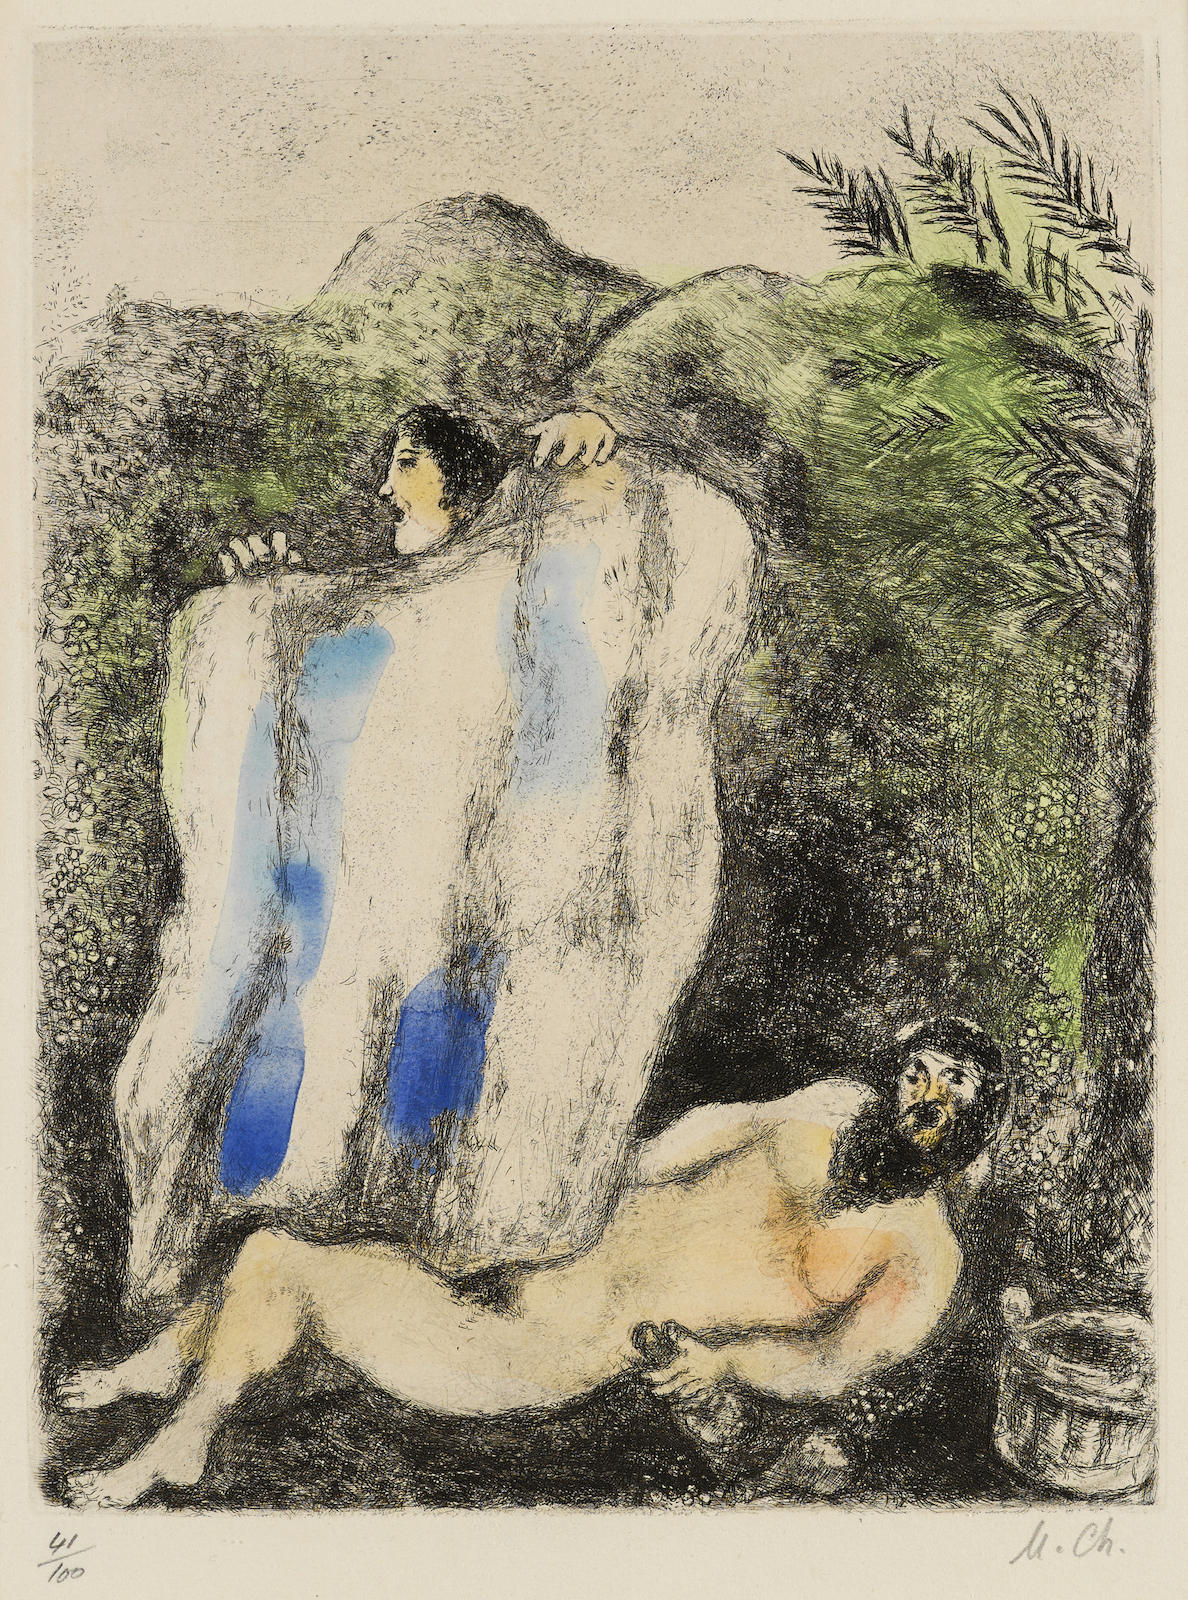 Marc Chagall-Le manteau de Noé, pl. 5, from La Bible (V. 203; C. bk. 30)-1939